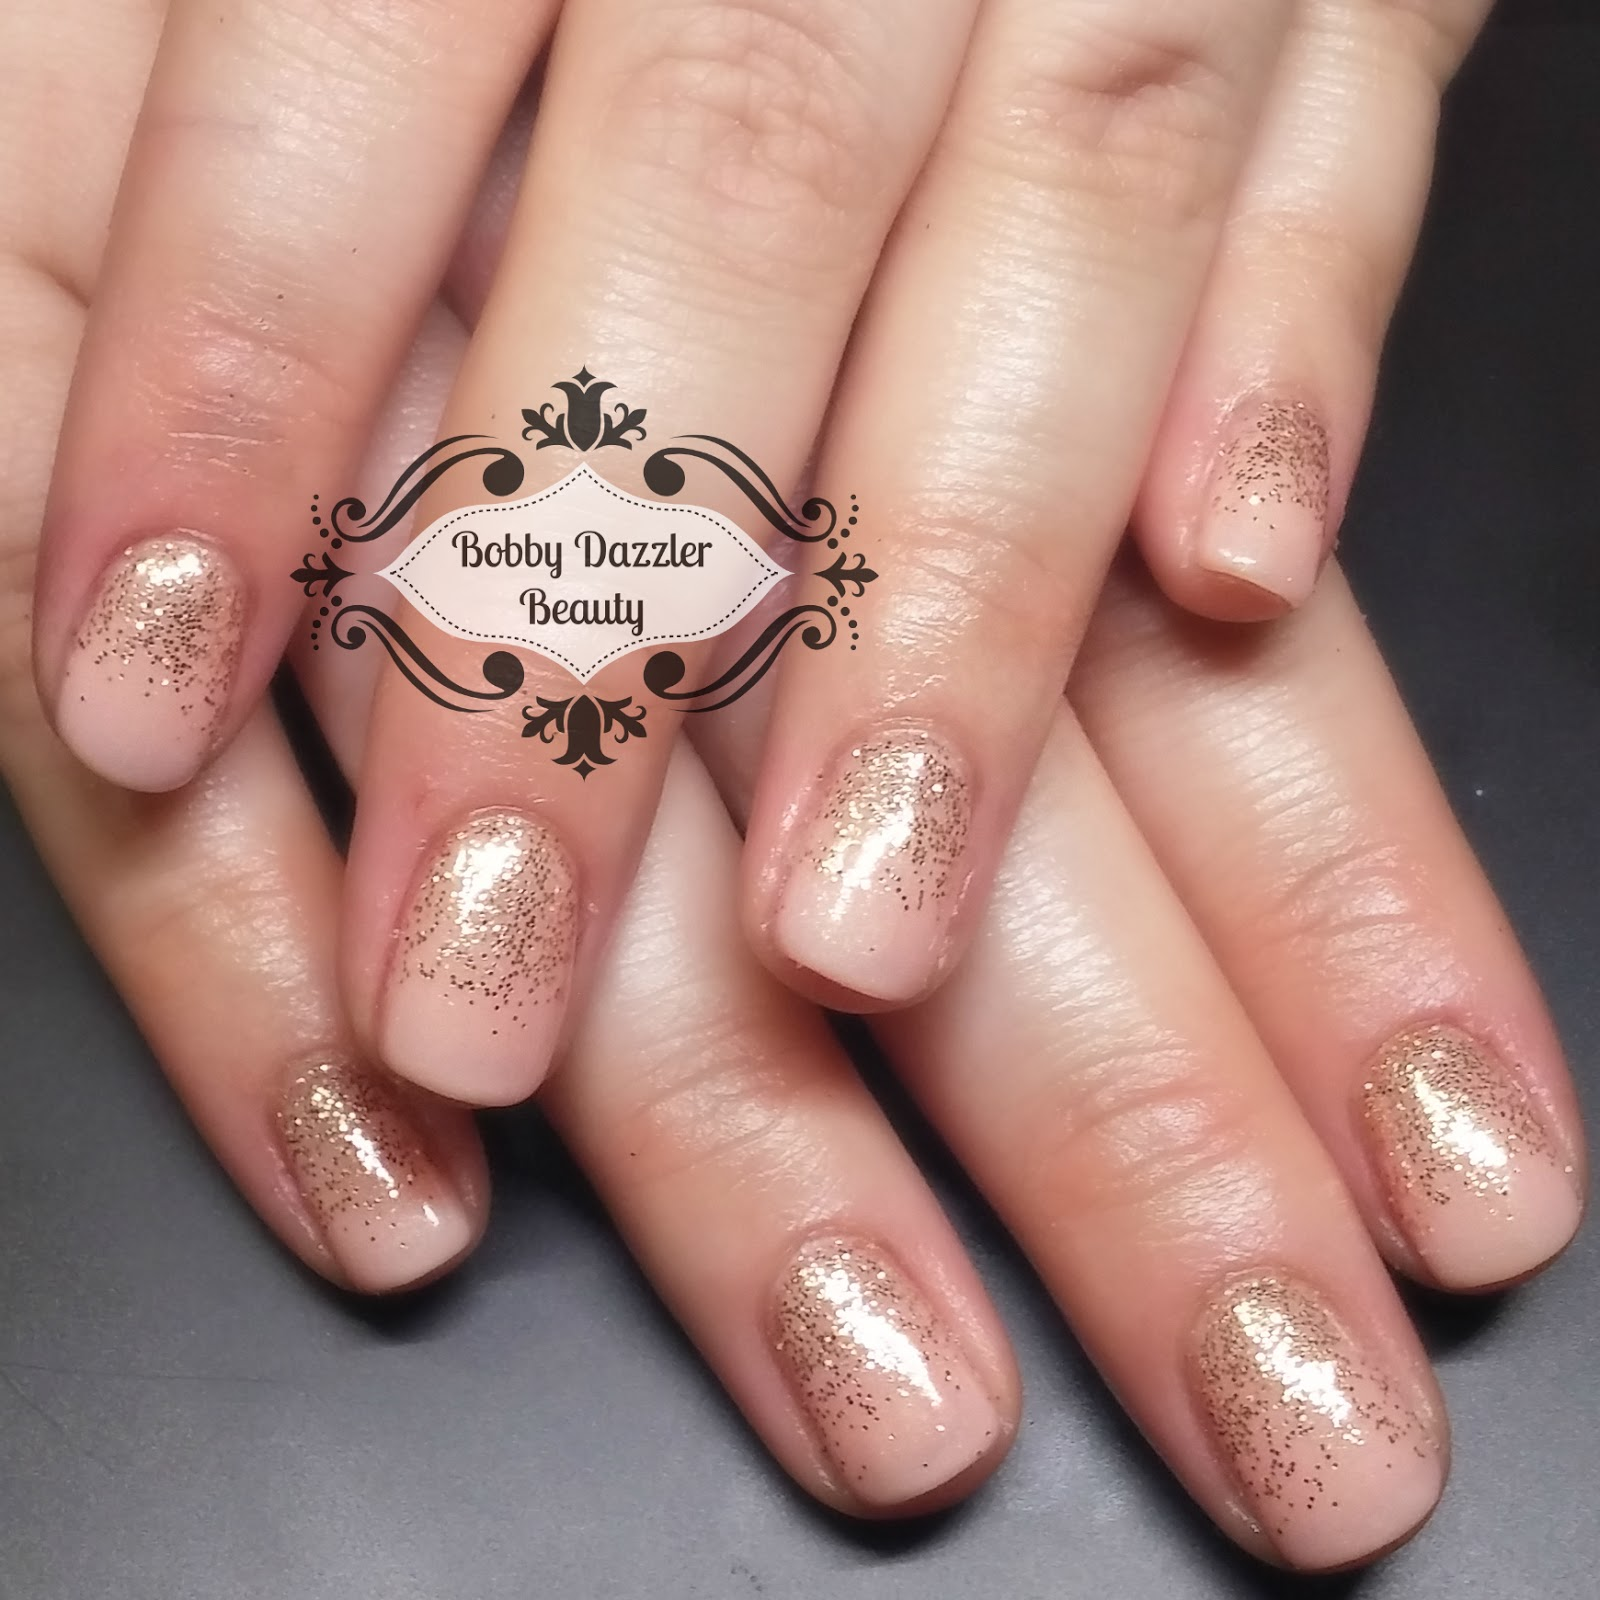 Bobby Dazzler: From Short to Long - A Hard Gel Nail Growing Journey.